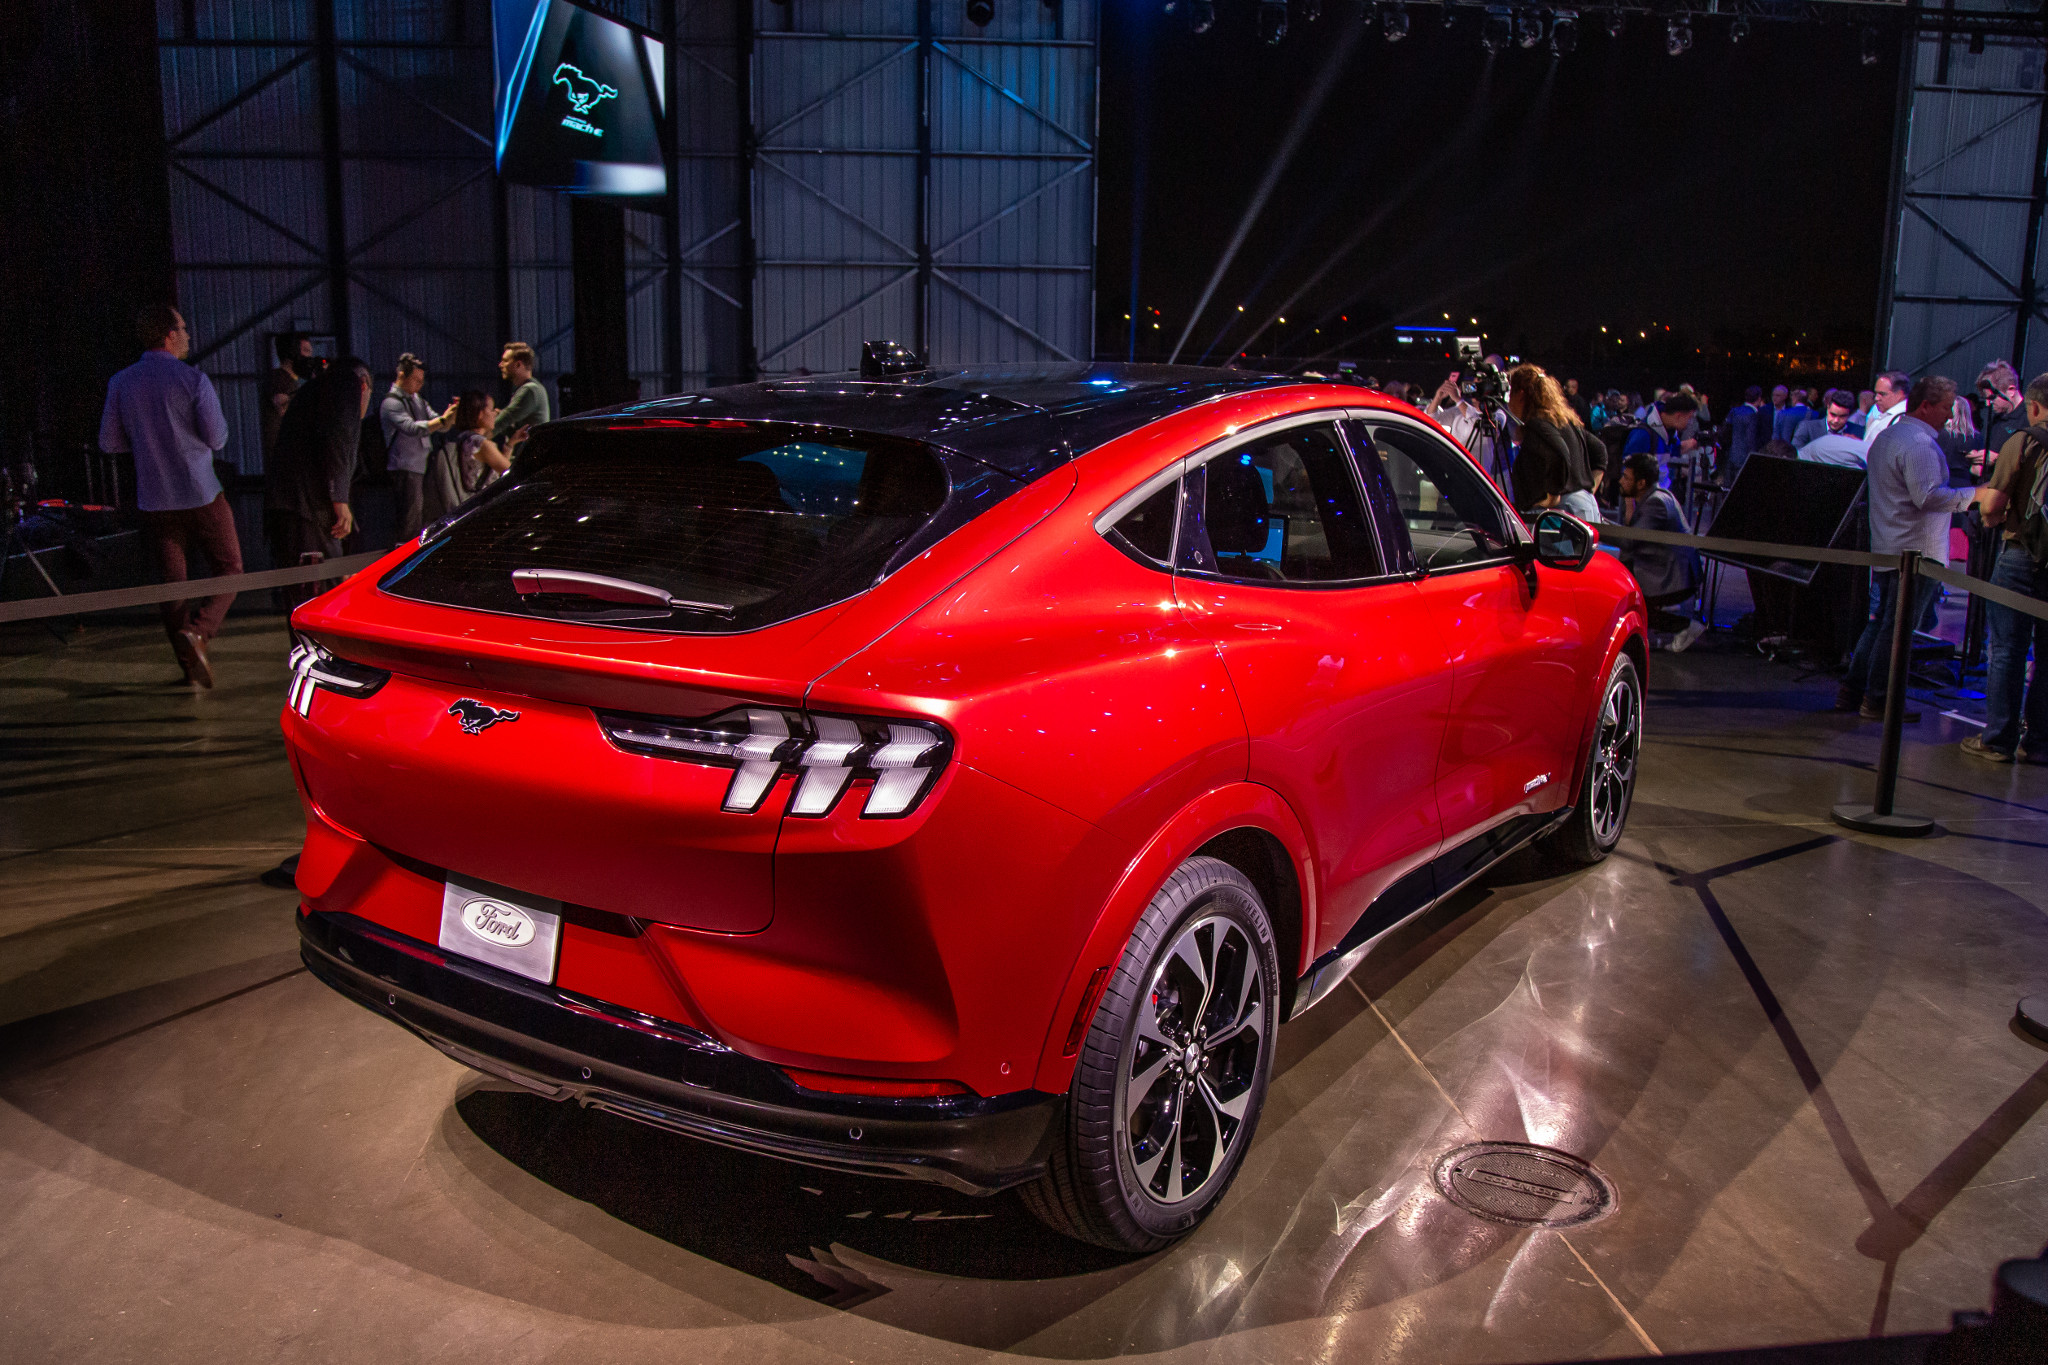 ford-mustang-mach-e-first-edition-2021-19-angle--exterior--rear--red.jpg